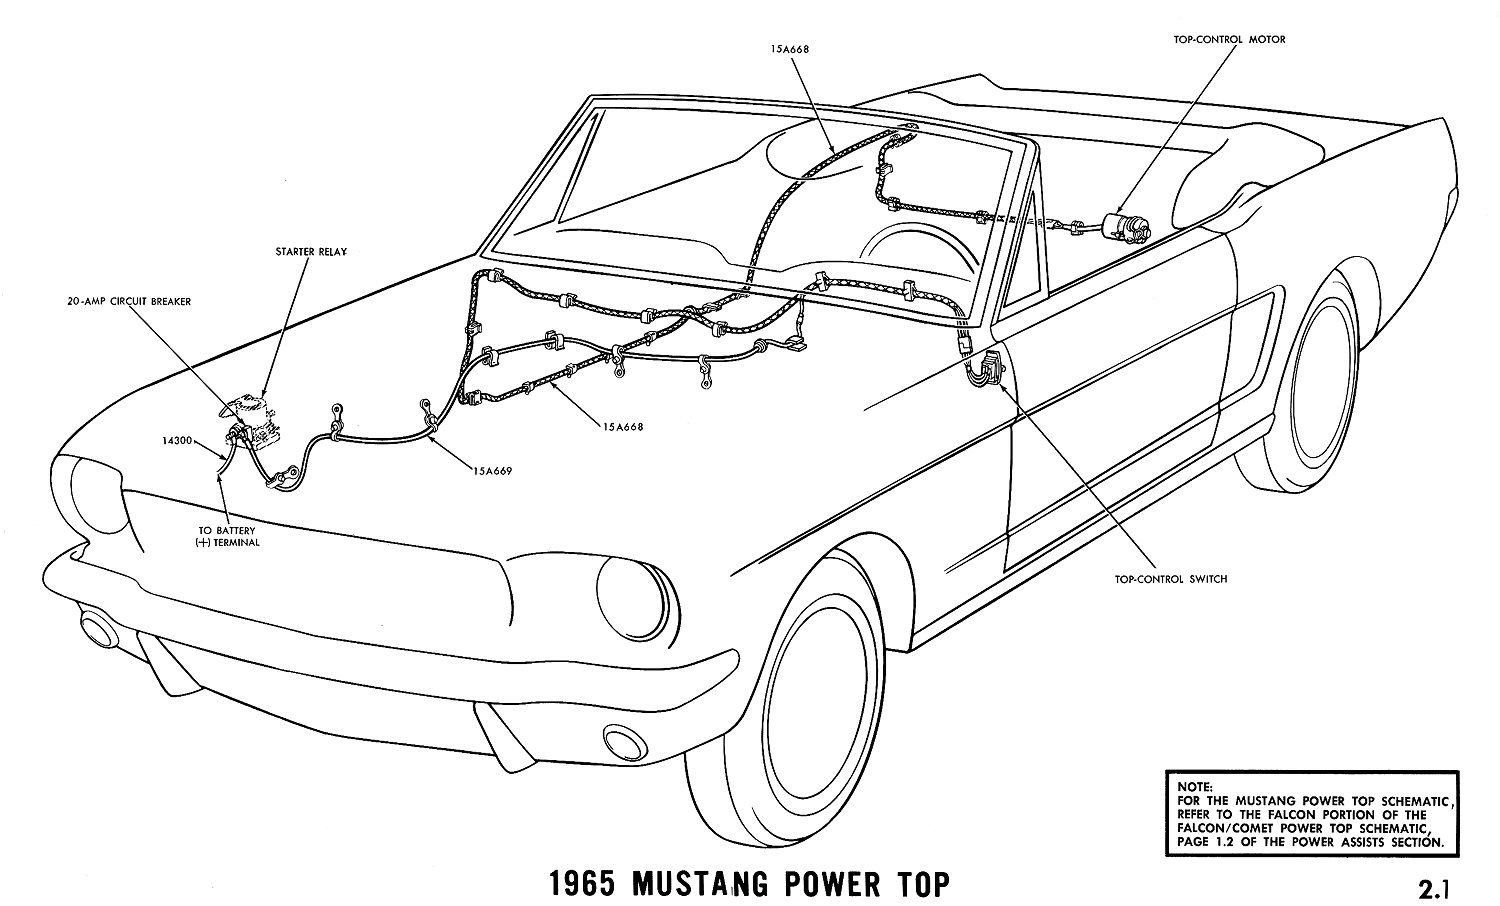 1965j 1965 mustang wiring diagrams average joe restoration 65 mustang alternator wiring diagram at n-0.co